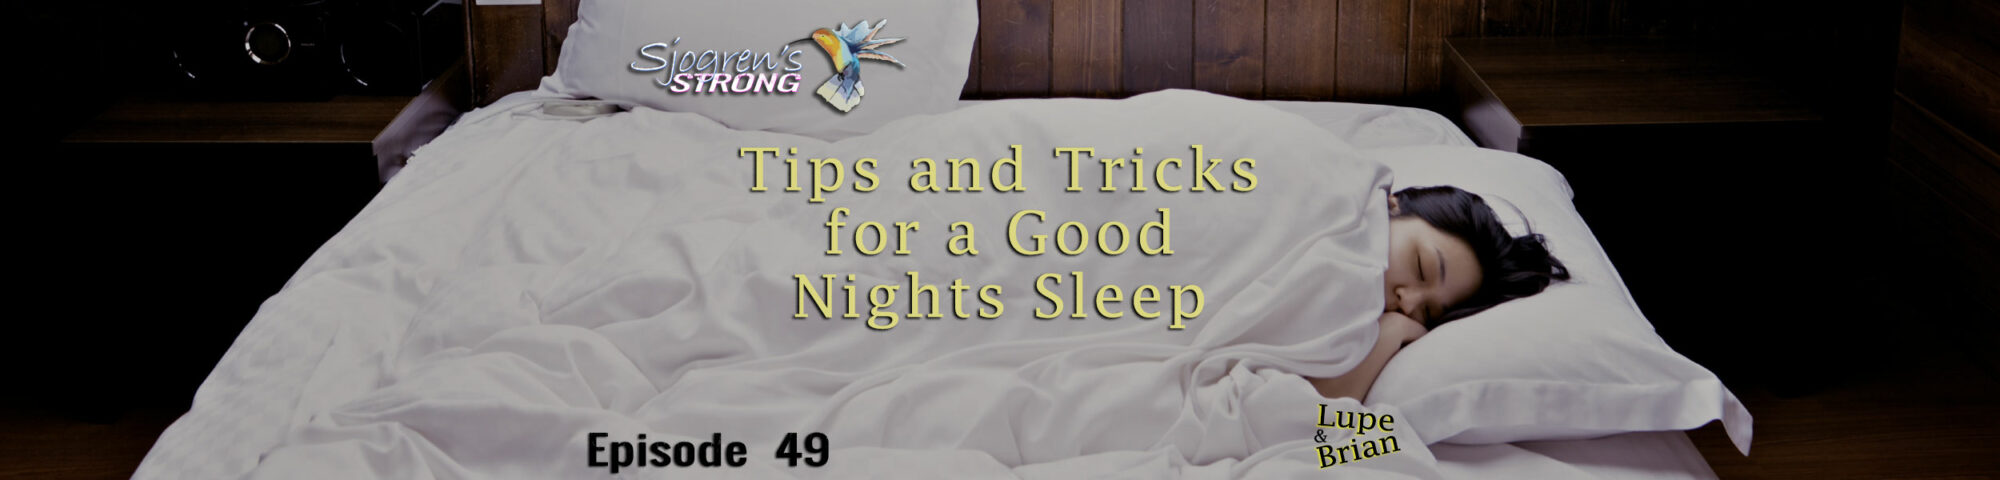 Tips and Tricks for a Good Nights Sleep